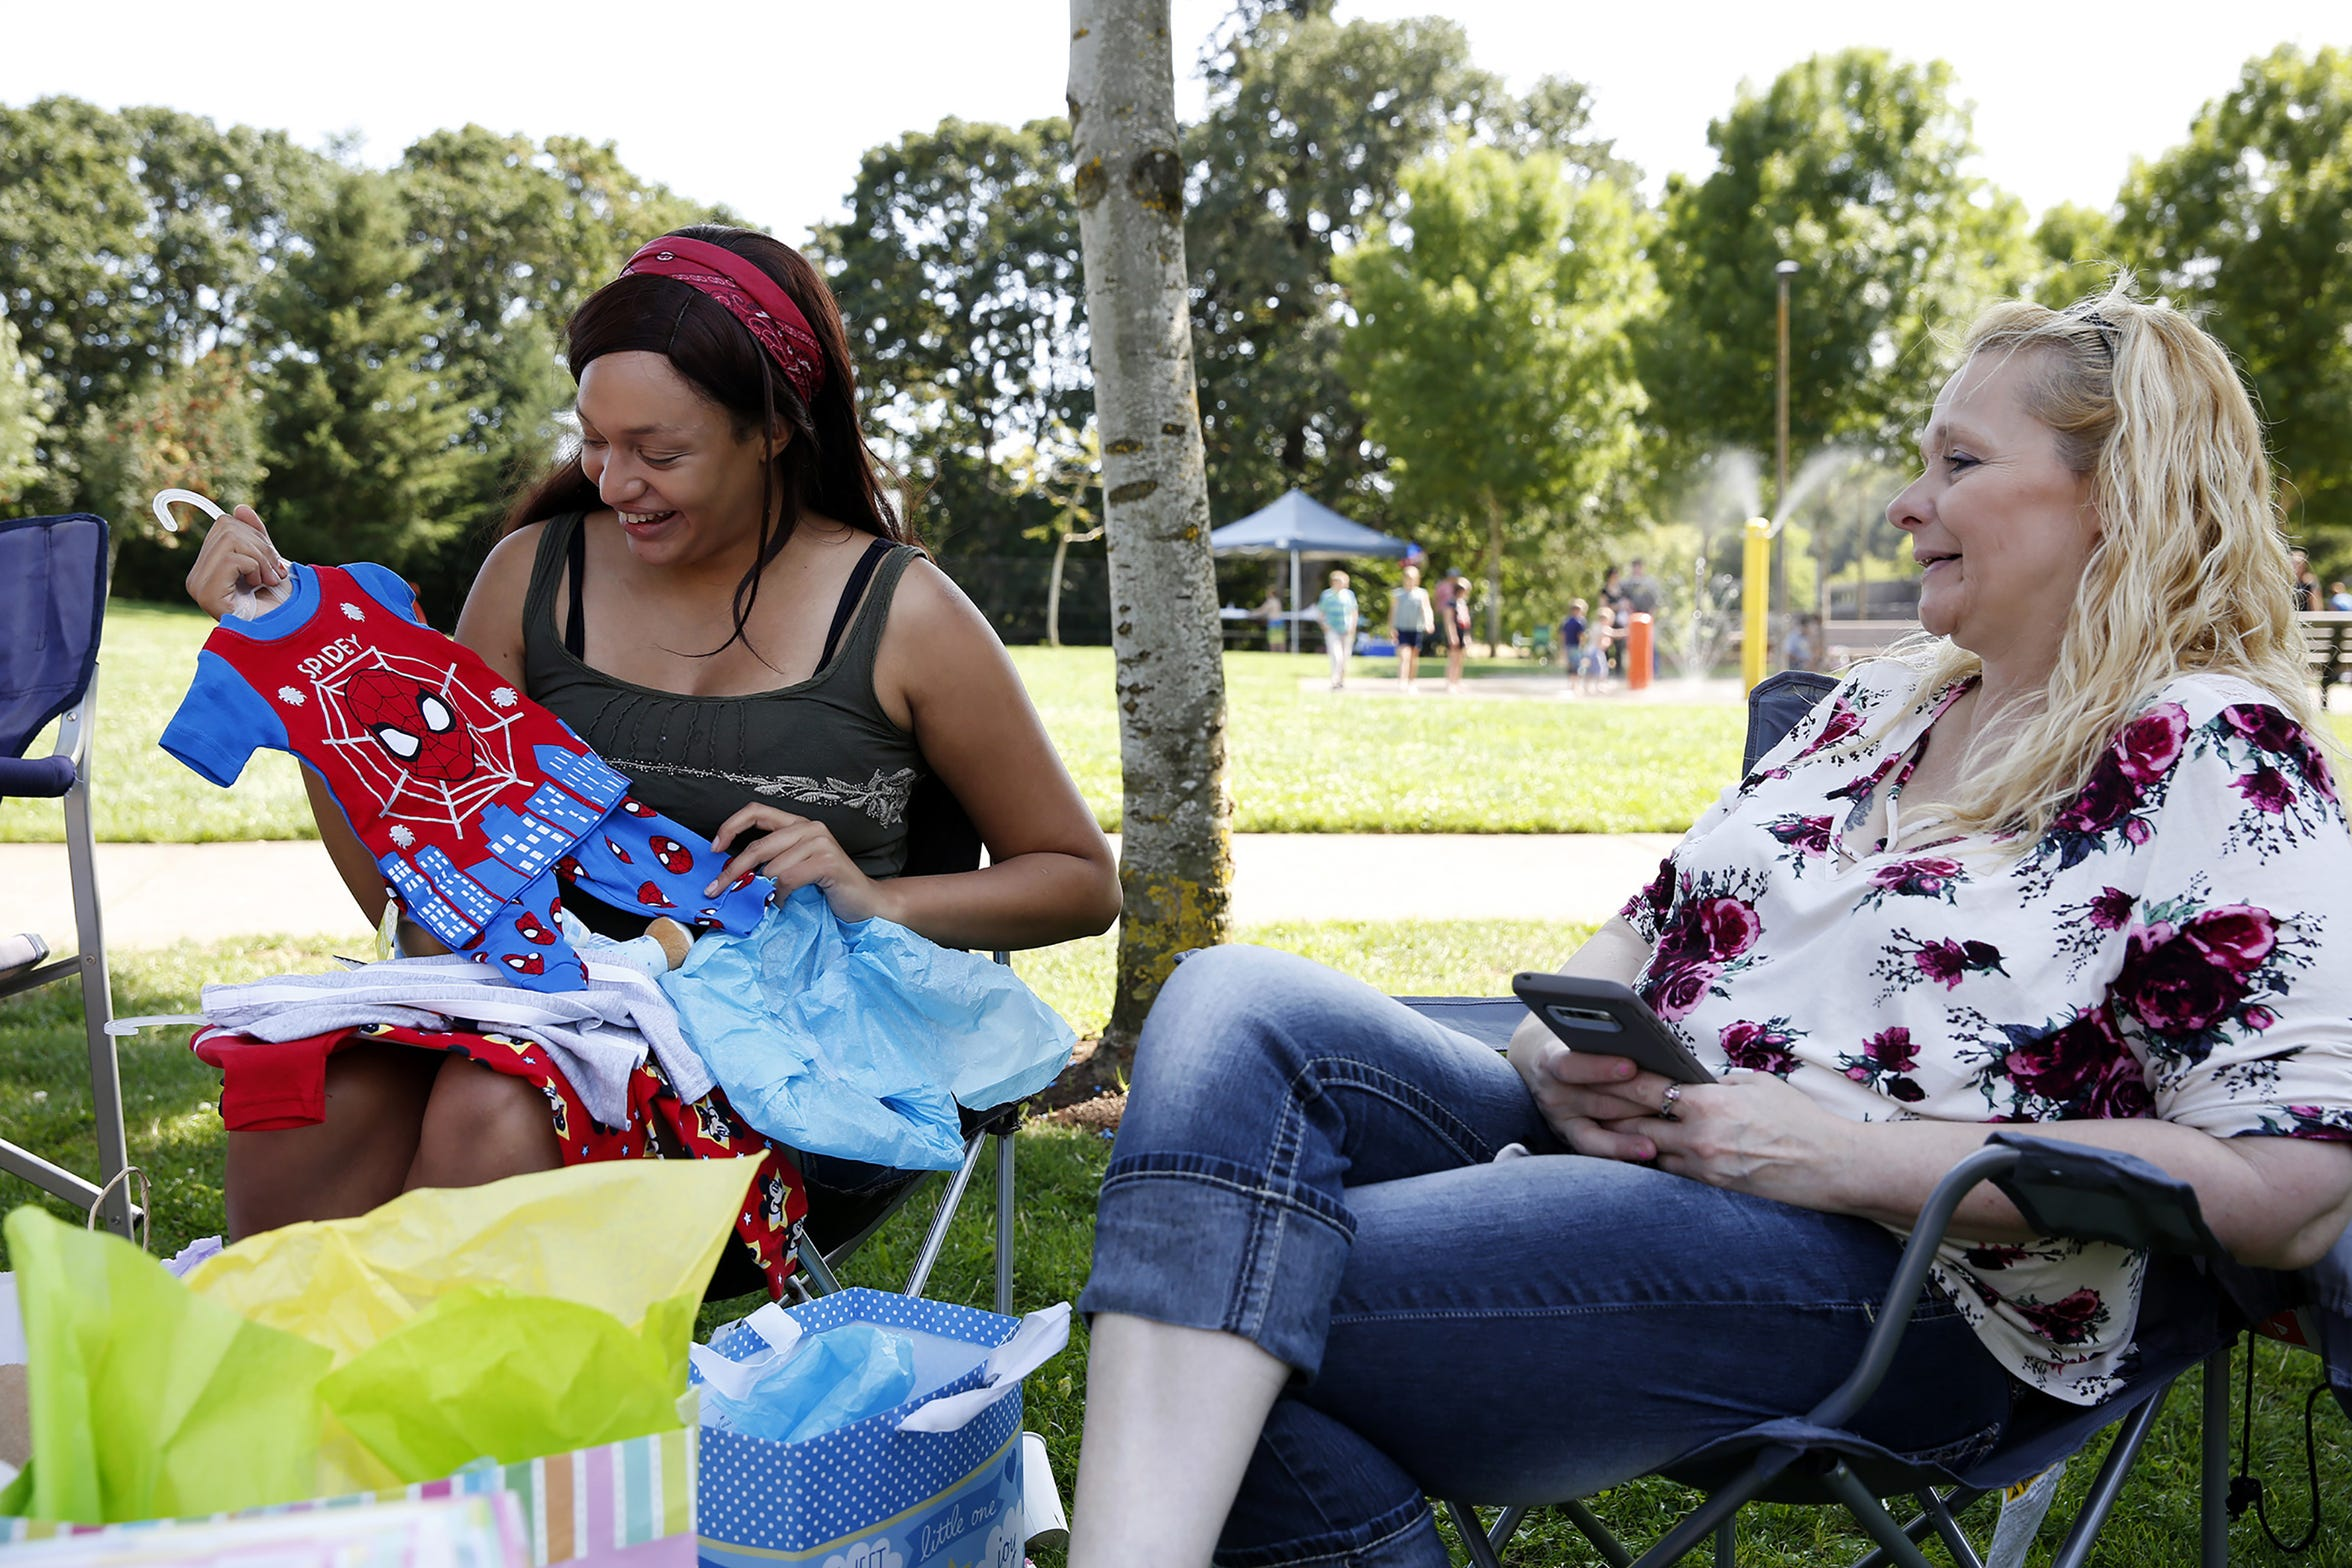 Marissa Brandt (left) opens a gift of Spider-Man pajamas as Lisa Ricks, the unborn baby's grandmother, looks on during Brandt's baby shower at Wes Bennett Park in Salem, Oregon, on Sunday, Aug. 12, 2018.